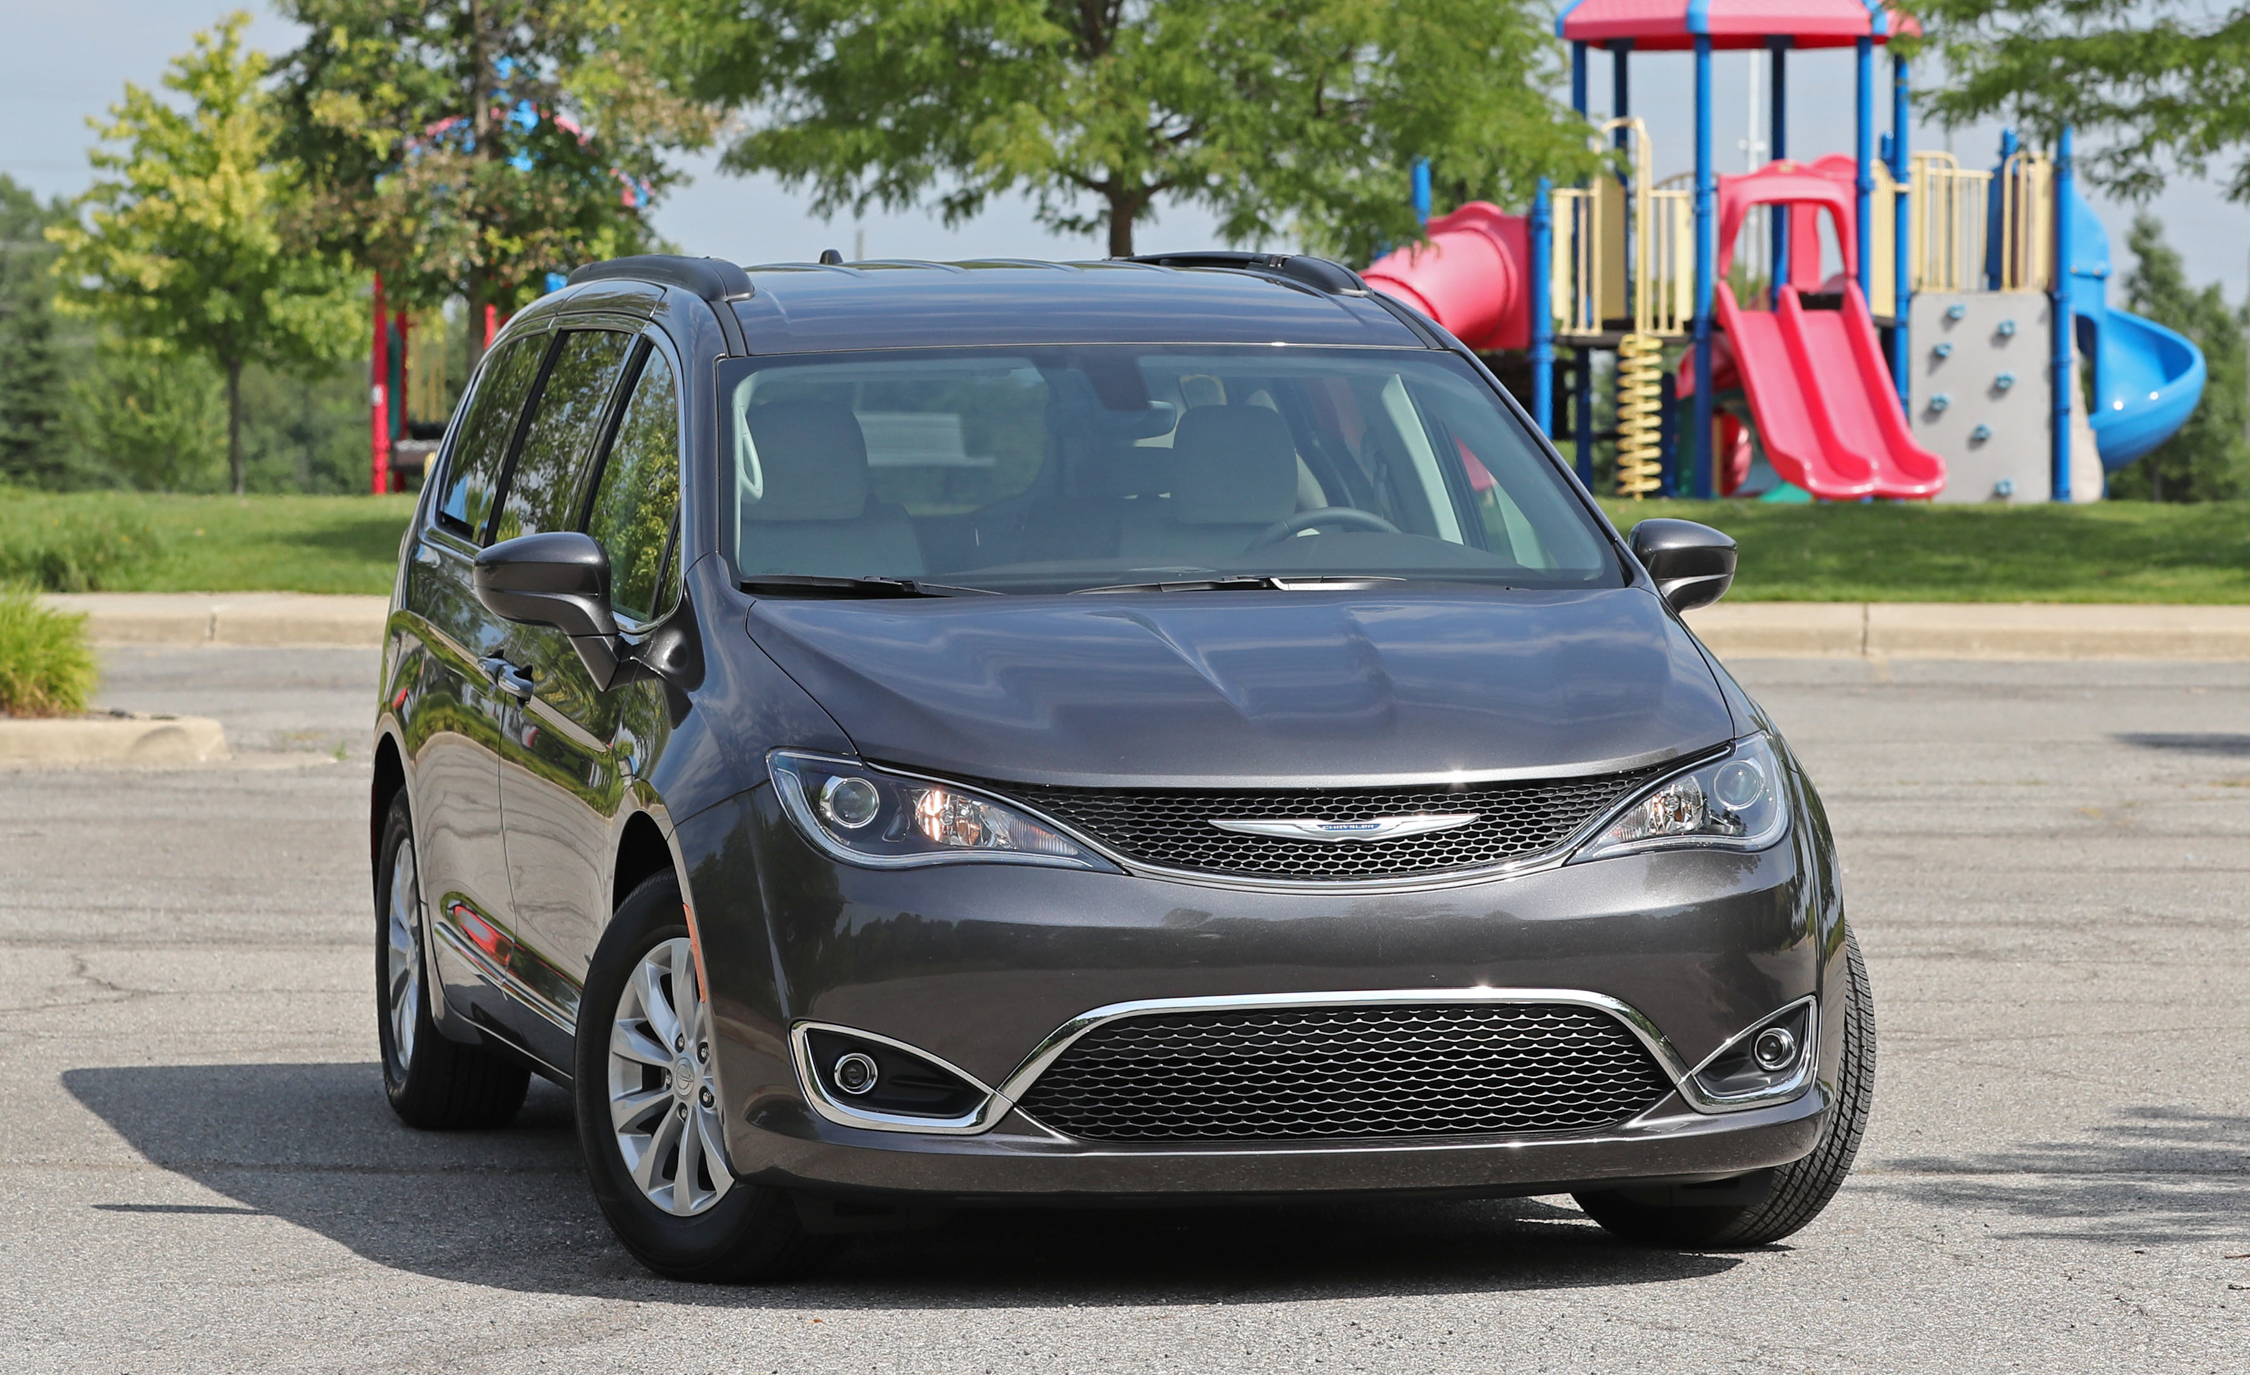 2017 Chrysler Pacifica Touring L Exterior Front End (View 14 of 25)